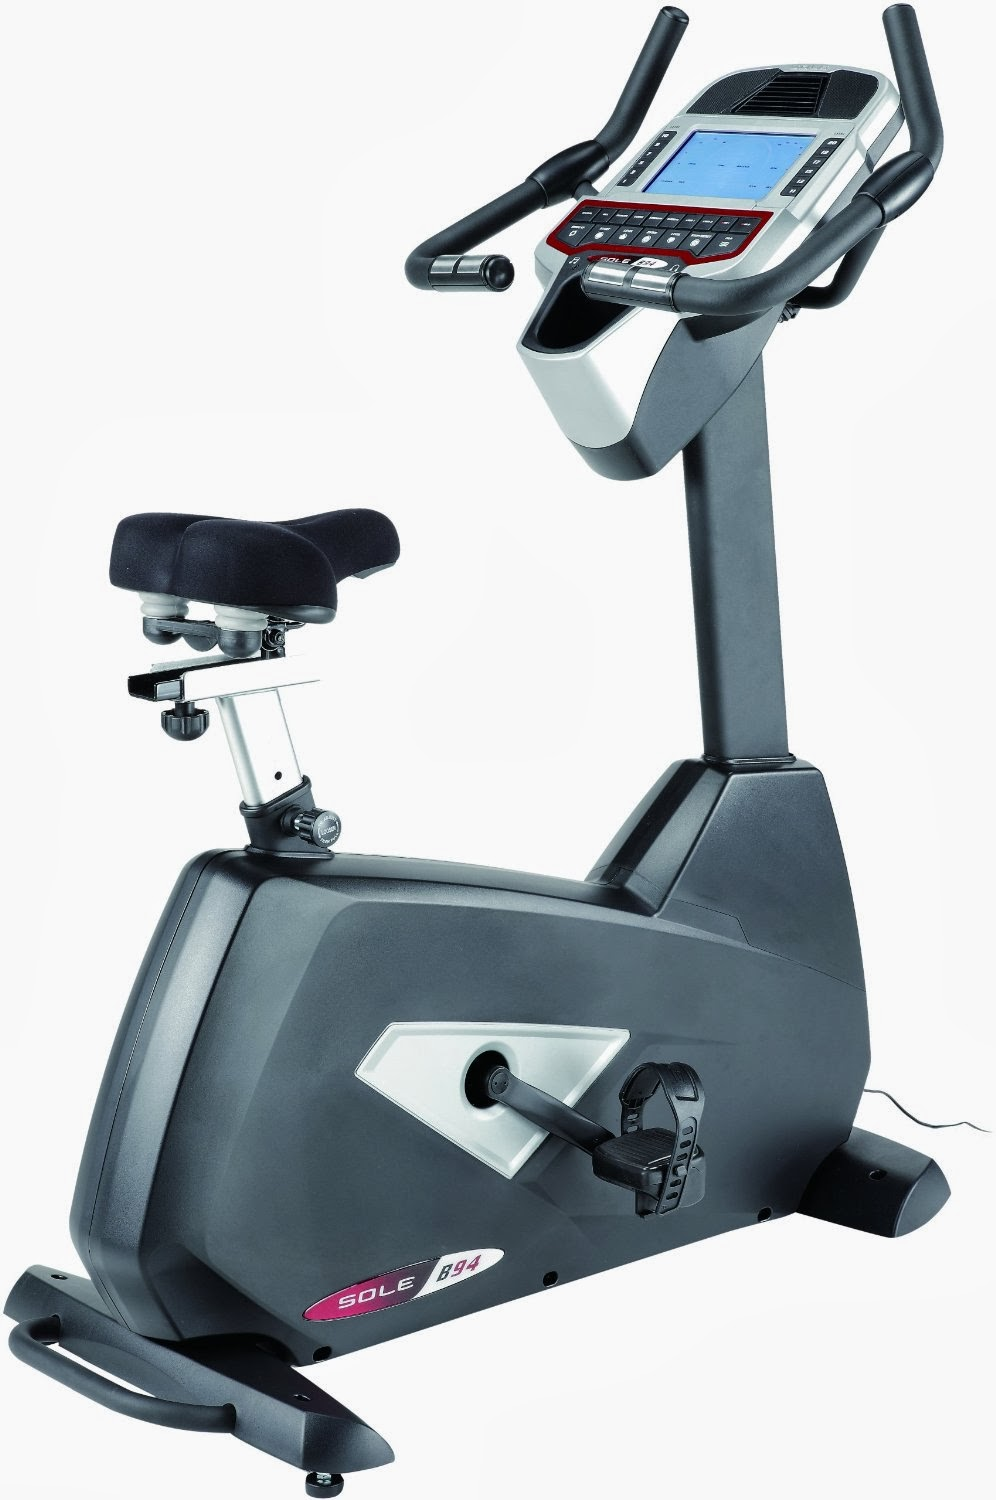 Sole Fitness B94 Upright Exercise Bike, picture, review features & specifications